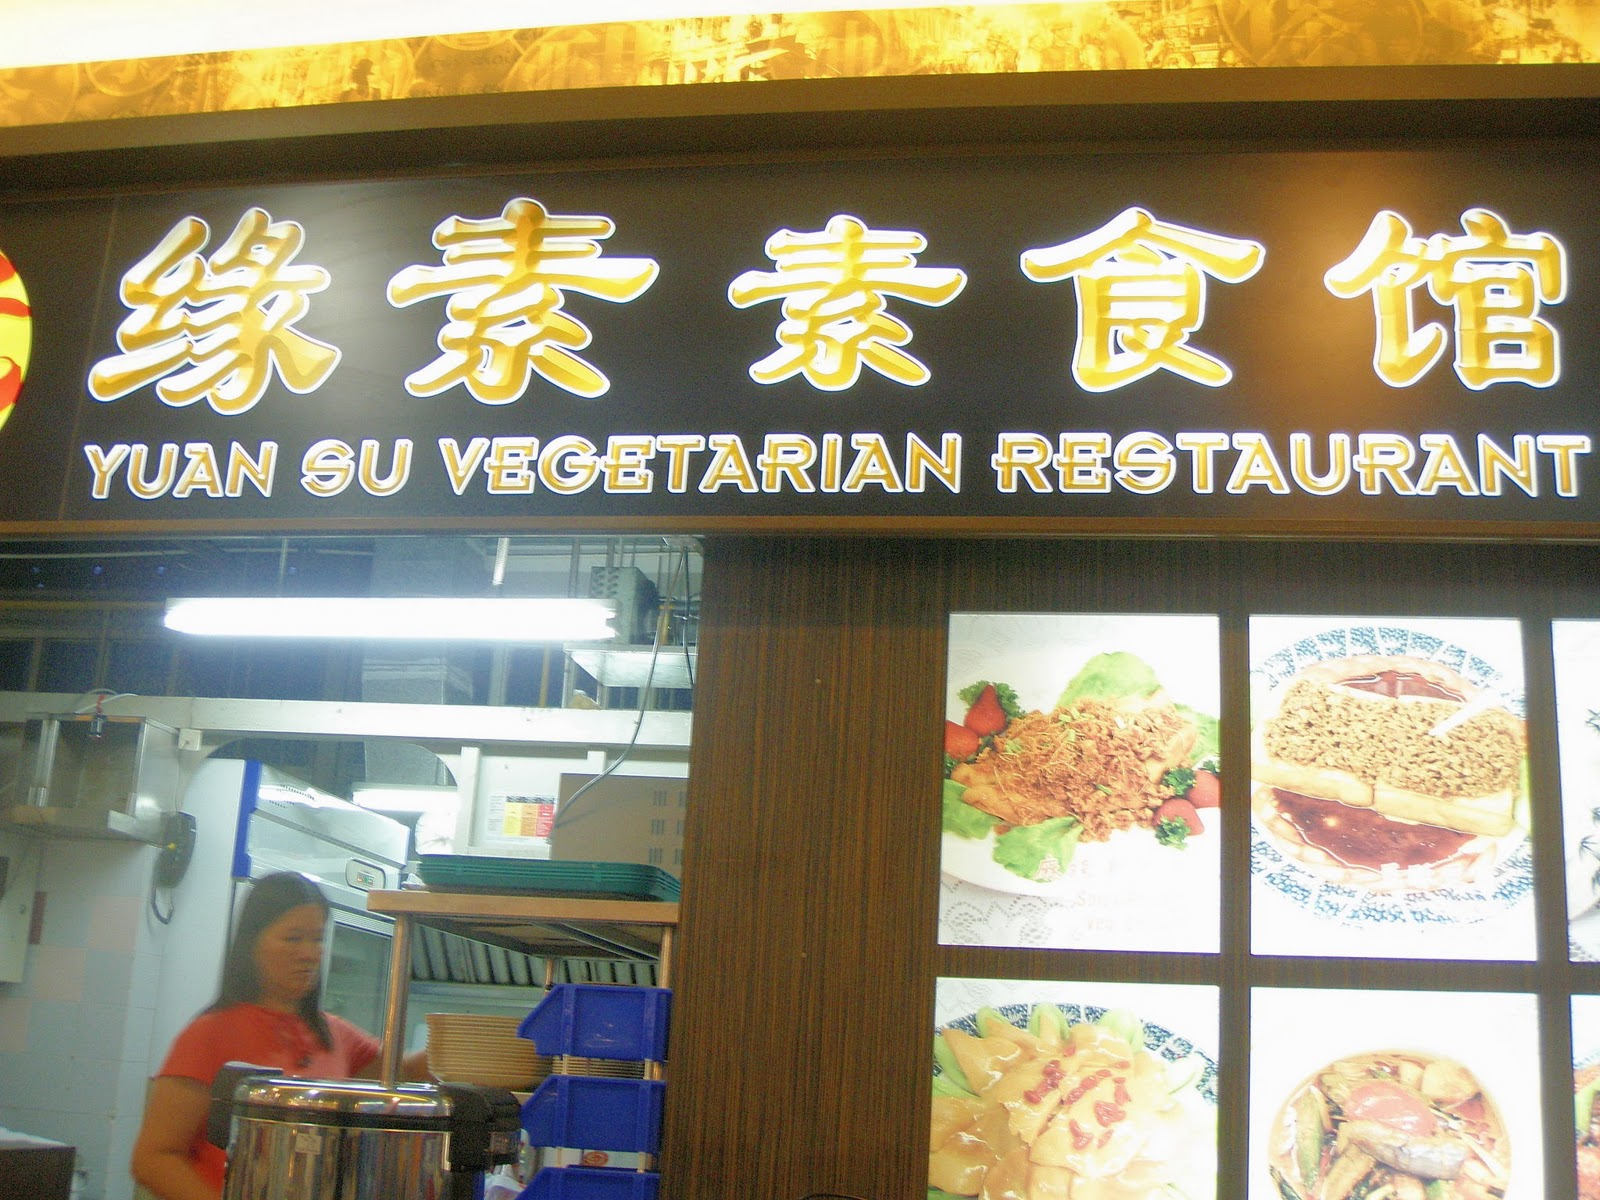 Chic vegetarian cuisine a new and awesome vegetarian for Awesome cuisine categories vegetarian